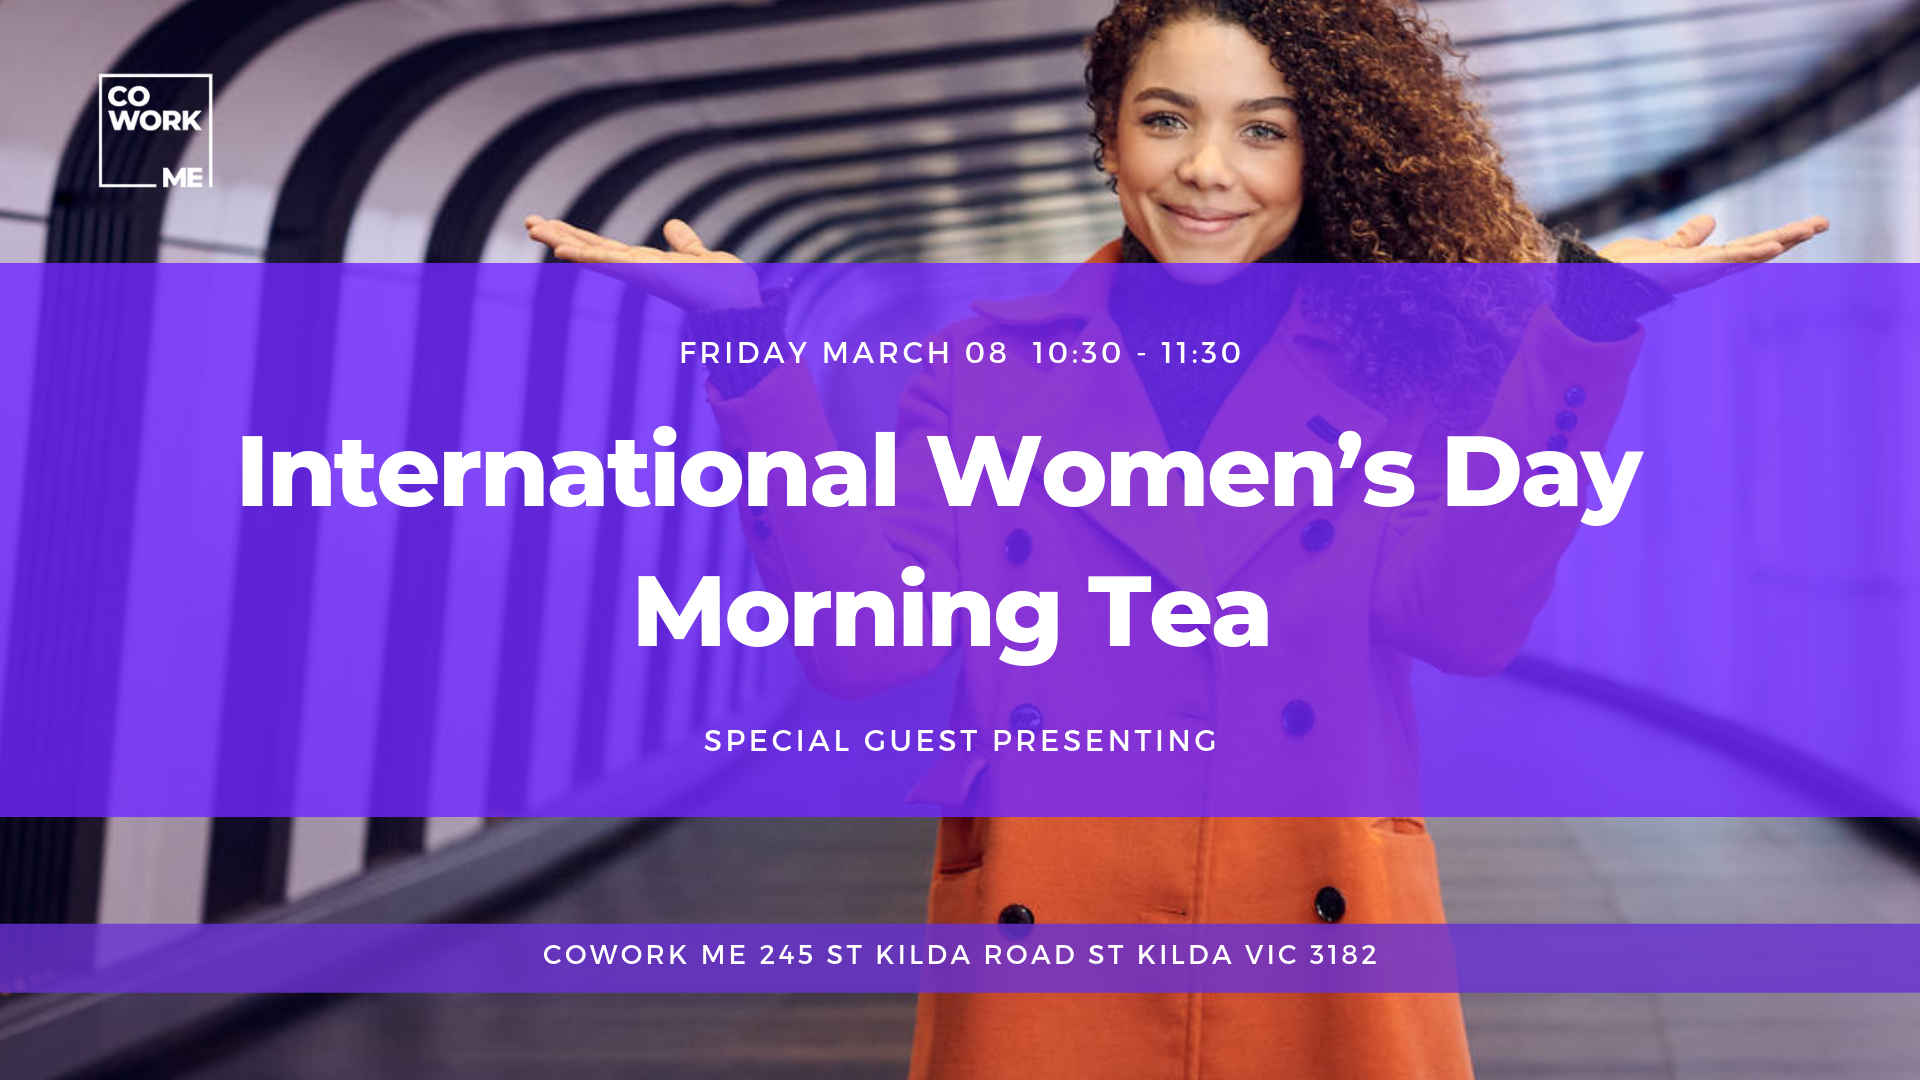 International Women's Day Morning Tea